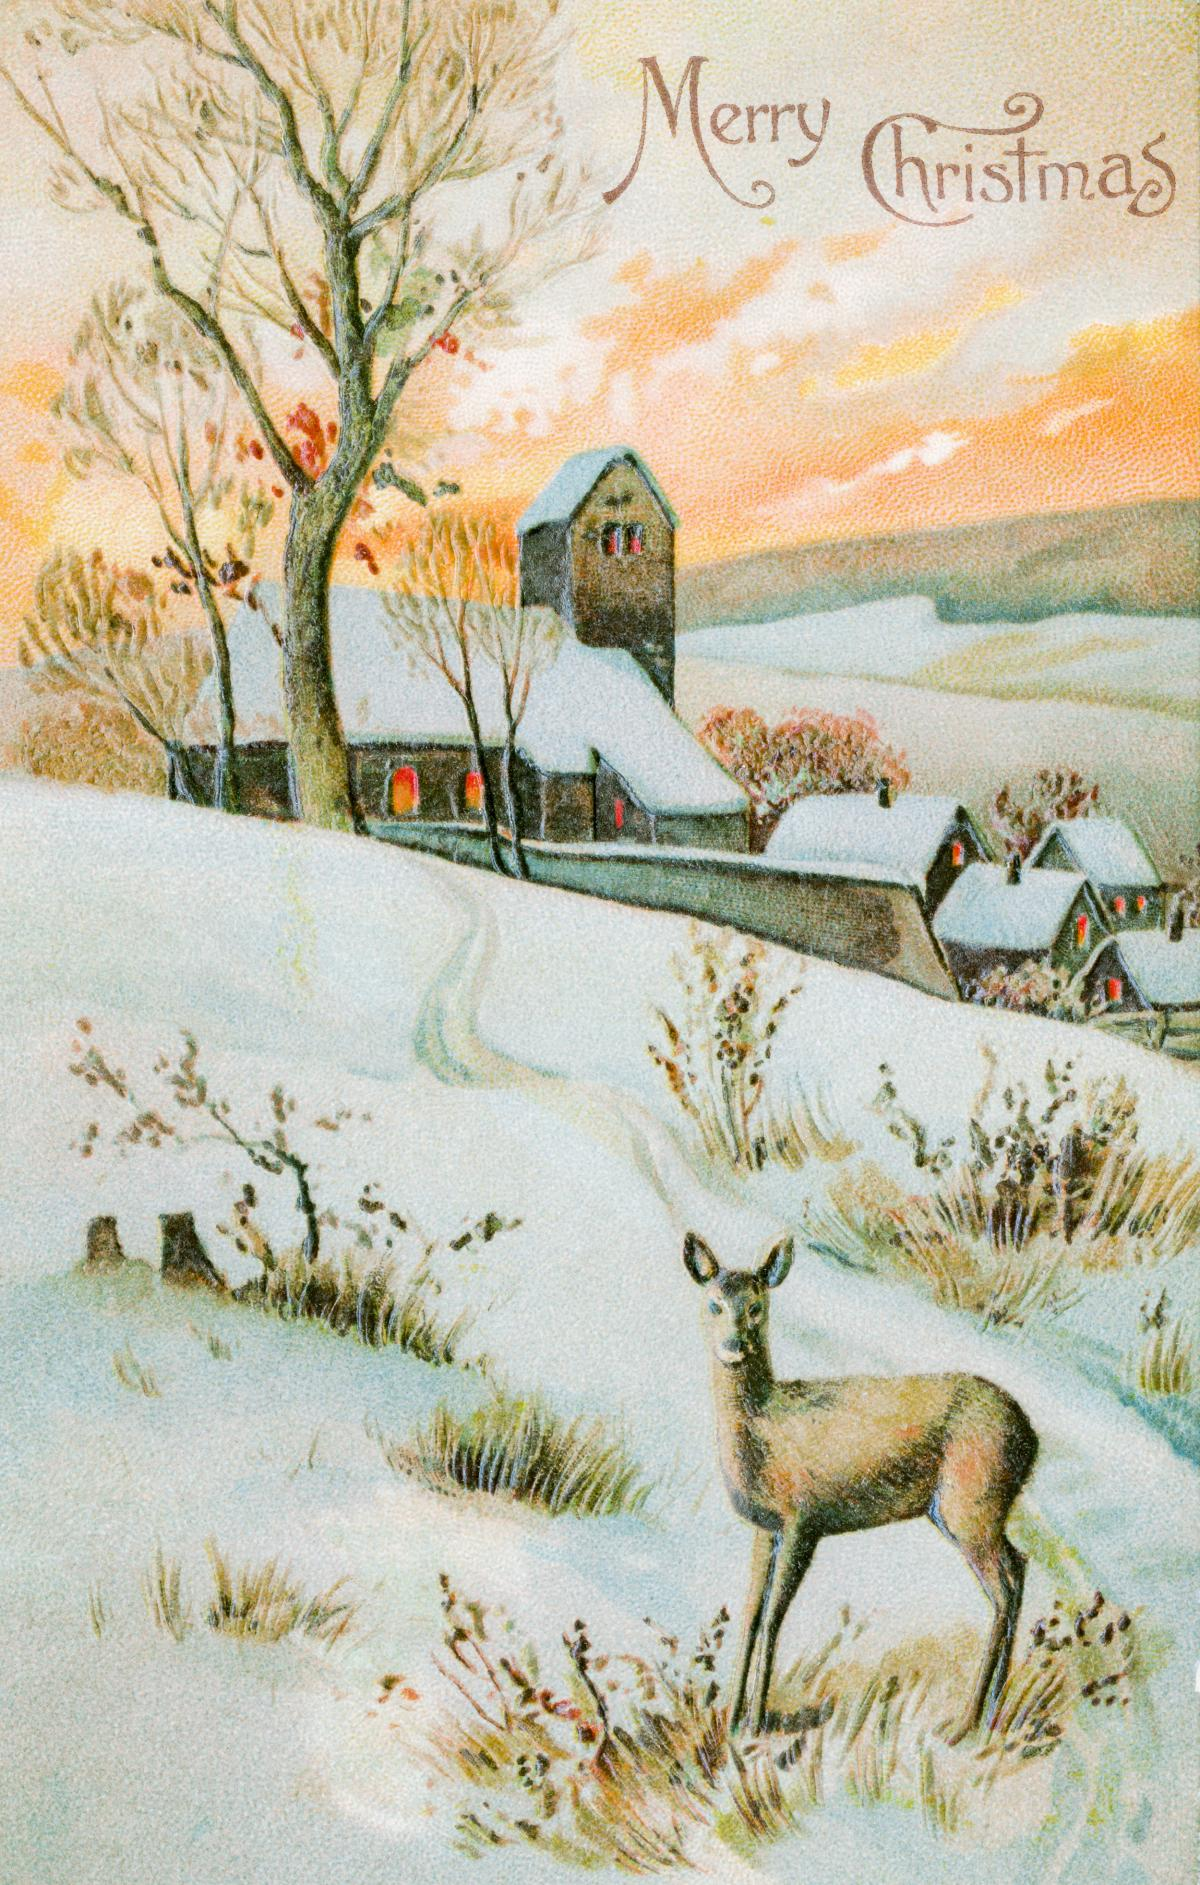 Christmas Card Depicting Winter Landscape and Deer (1910) by E. A. Schwerdtfeger & Co. Original from The New York Public Library.